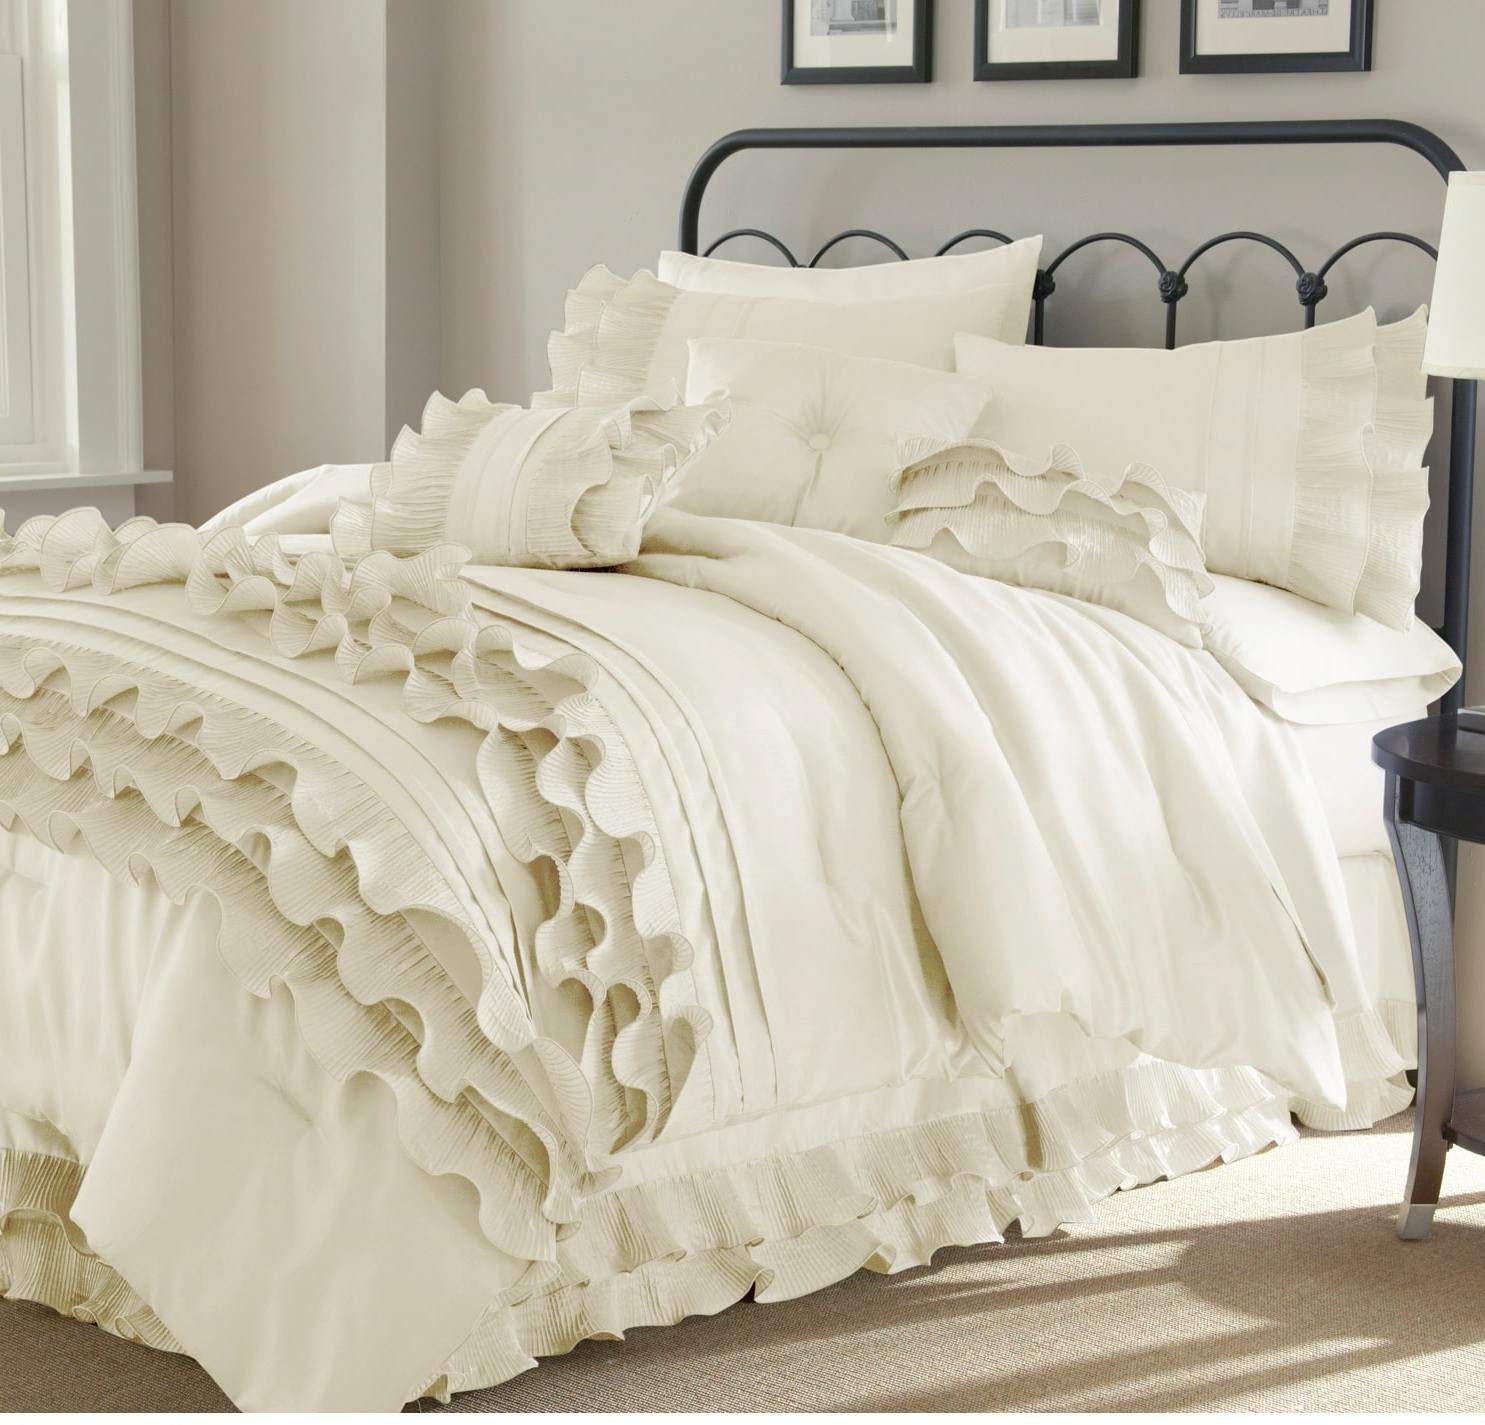 8 Piece Pearl White Ruffled Stripes Pattern Comforter King Set, for Luxury Modern Bedrooms, Beautiful Shabby Chic Ruffles Lines Design, Classic French Country Style, Neutral Solid Color, Unisex